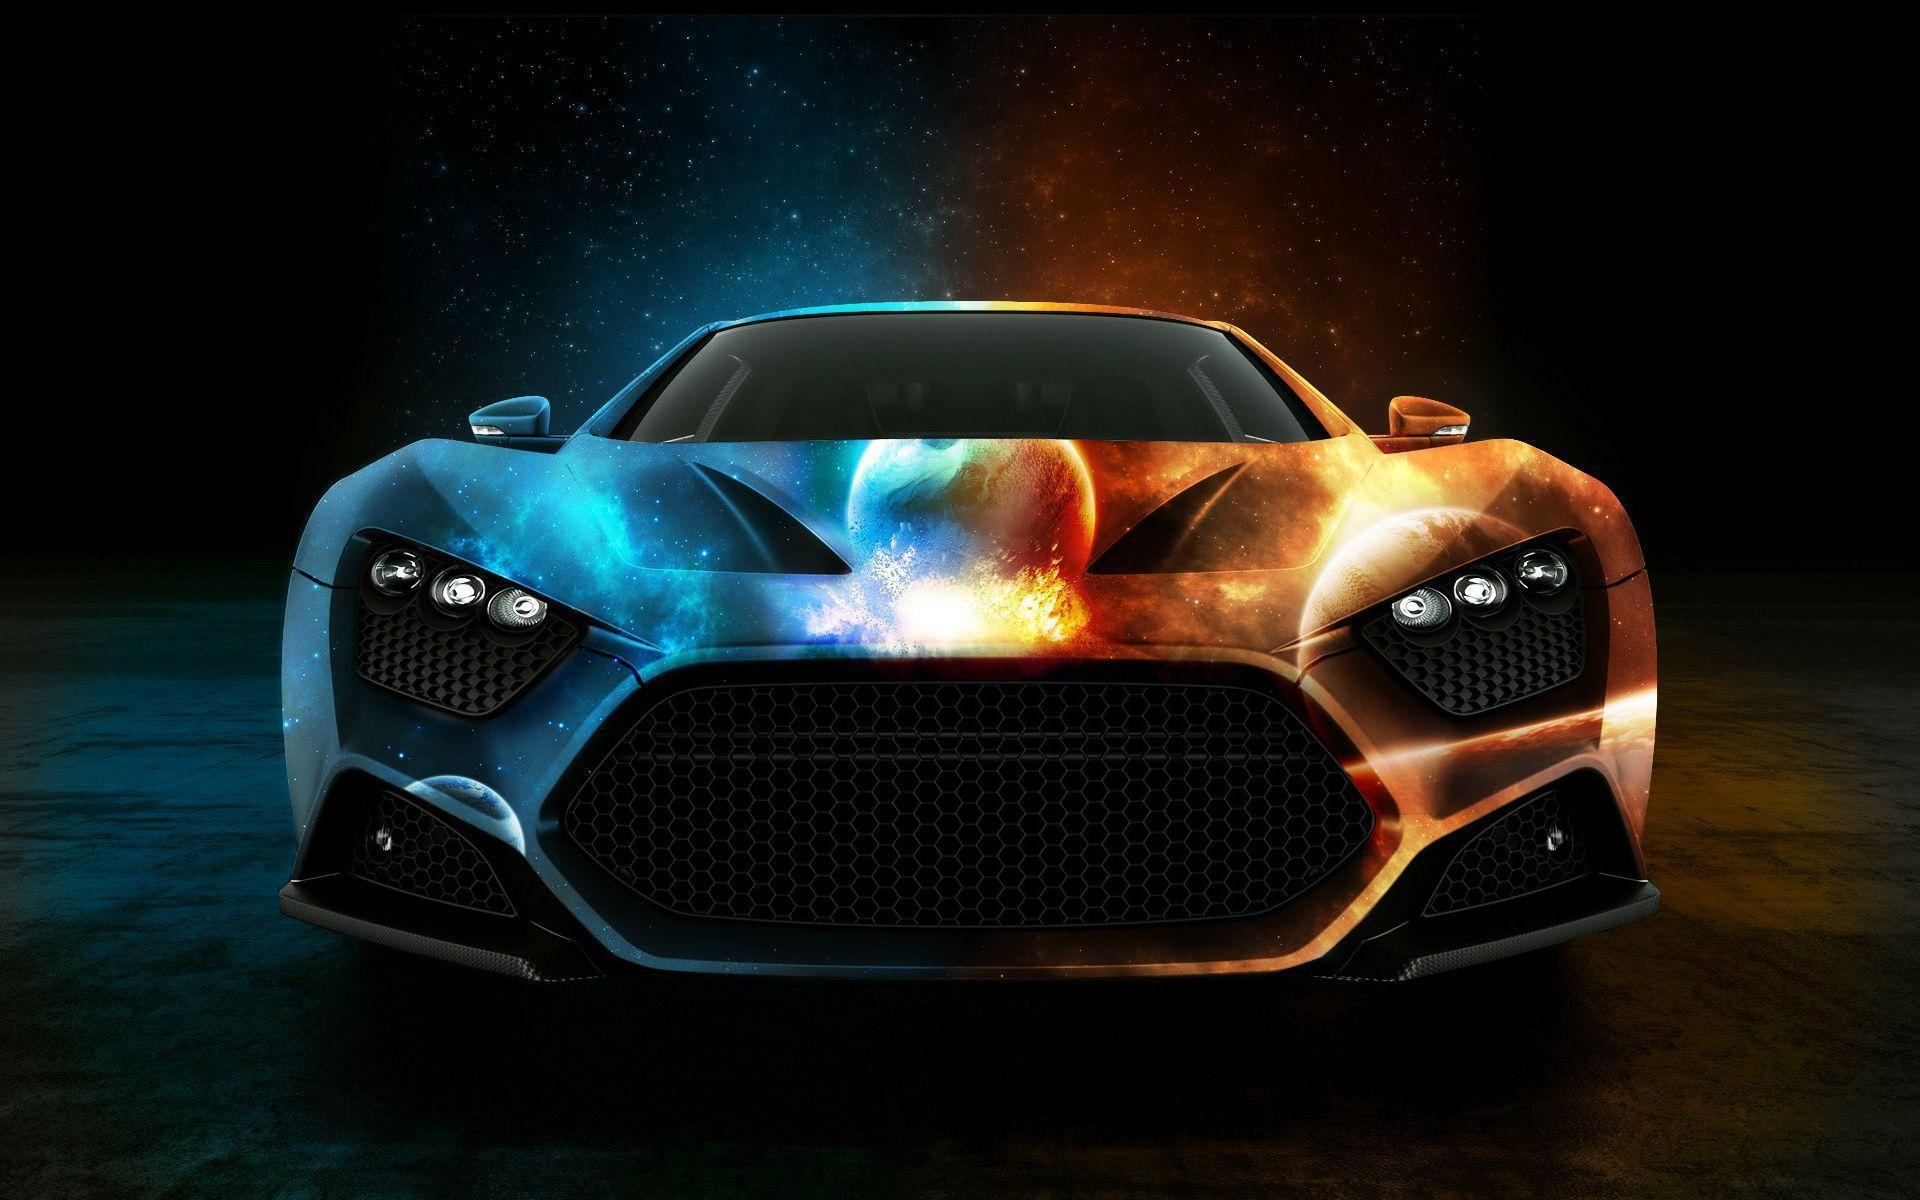 Cool Cars Wallpapers - Full HD wallpaper search